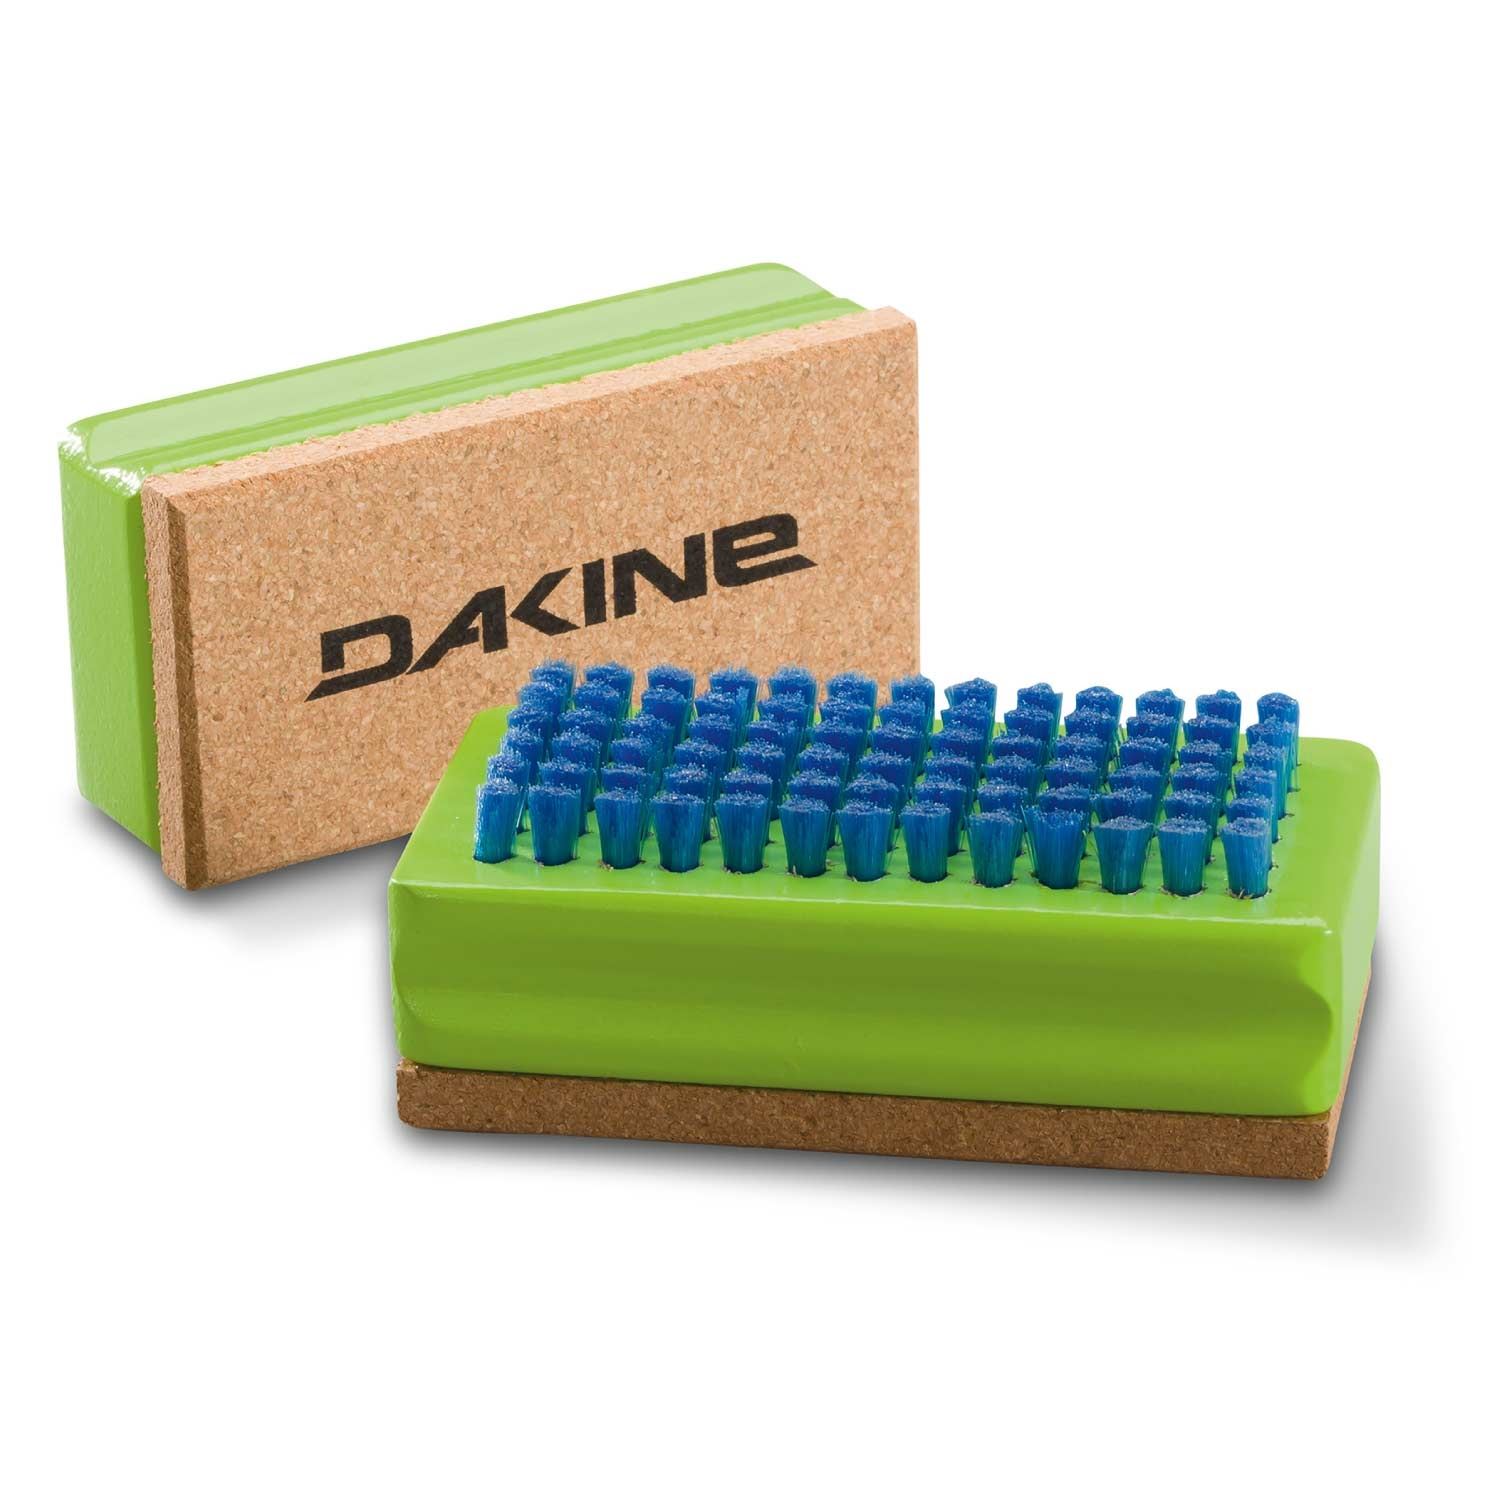 Dakine Nylon Cork Brush 2021